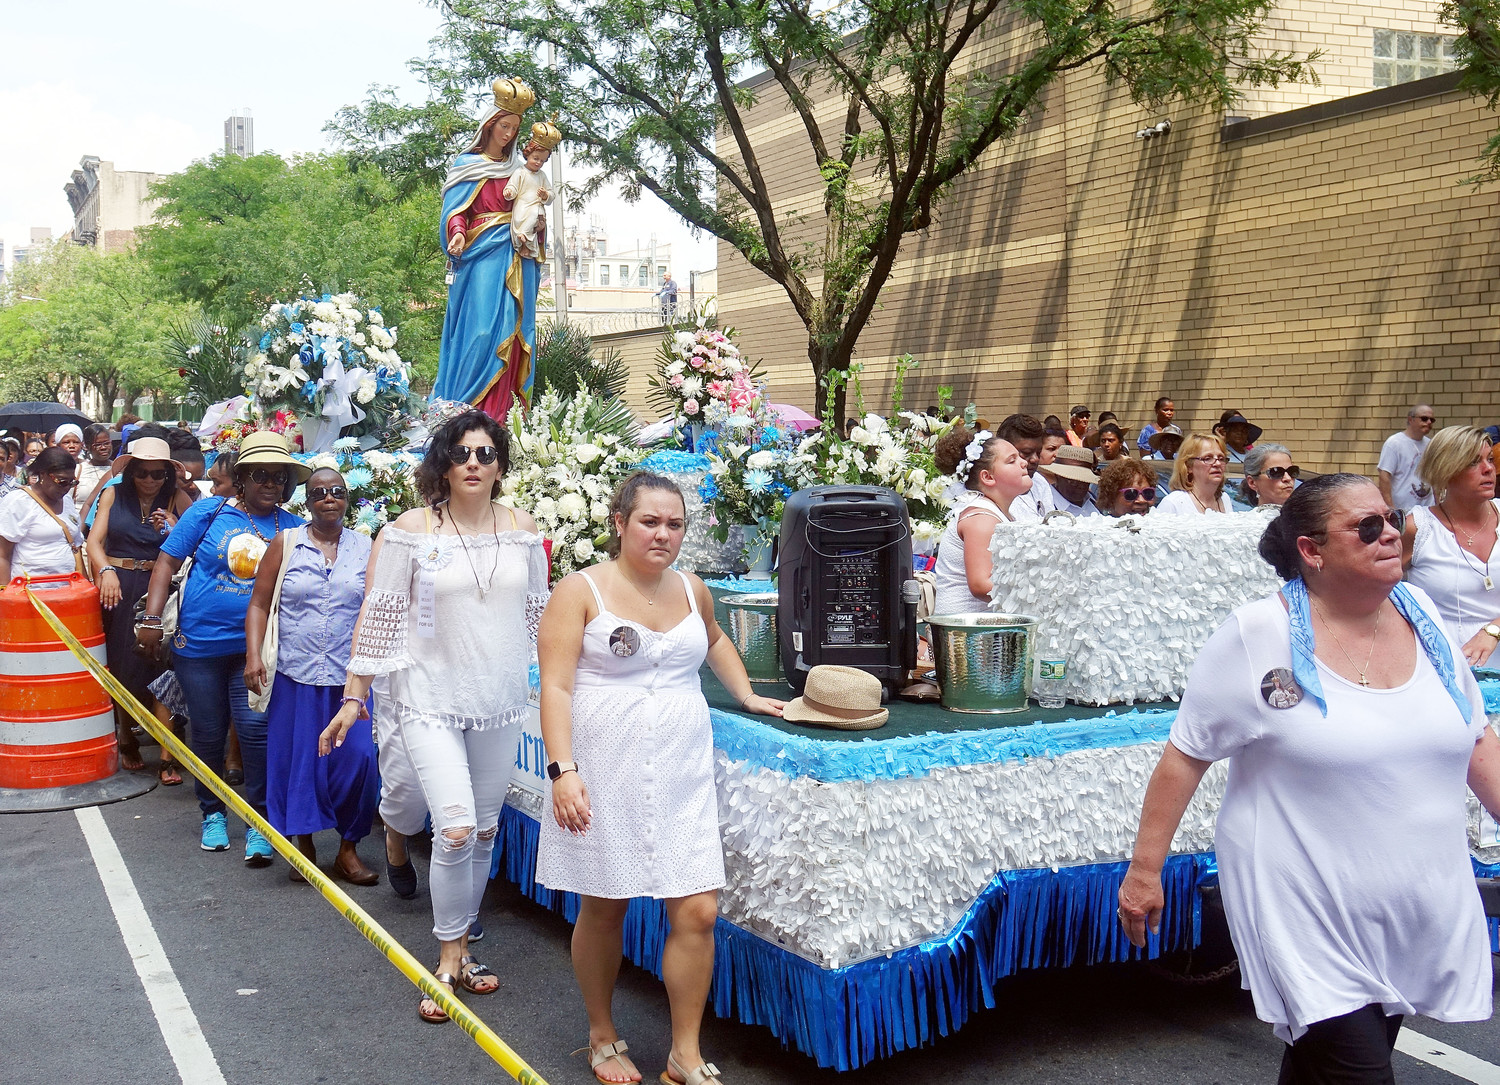 The statue of the Blessed Mother is carried on a float in the procession.